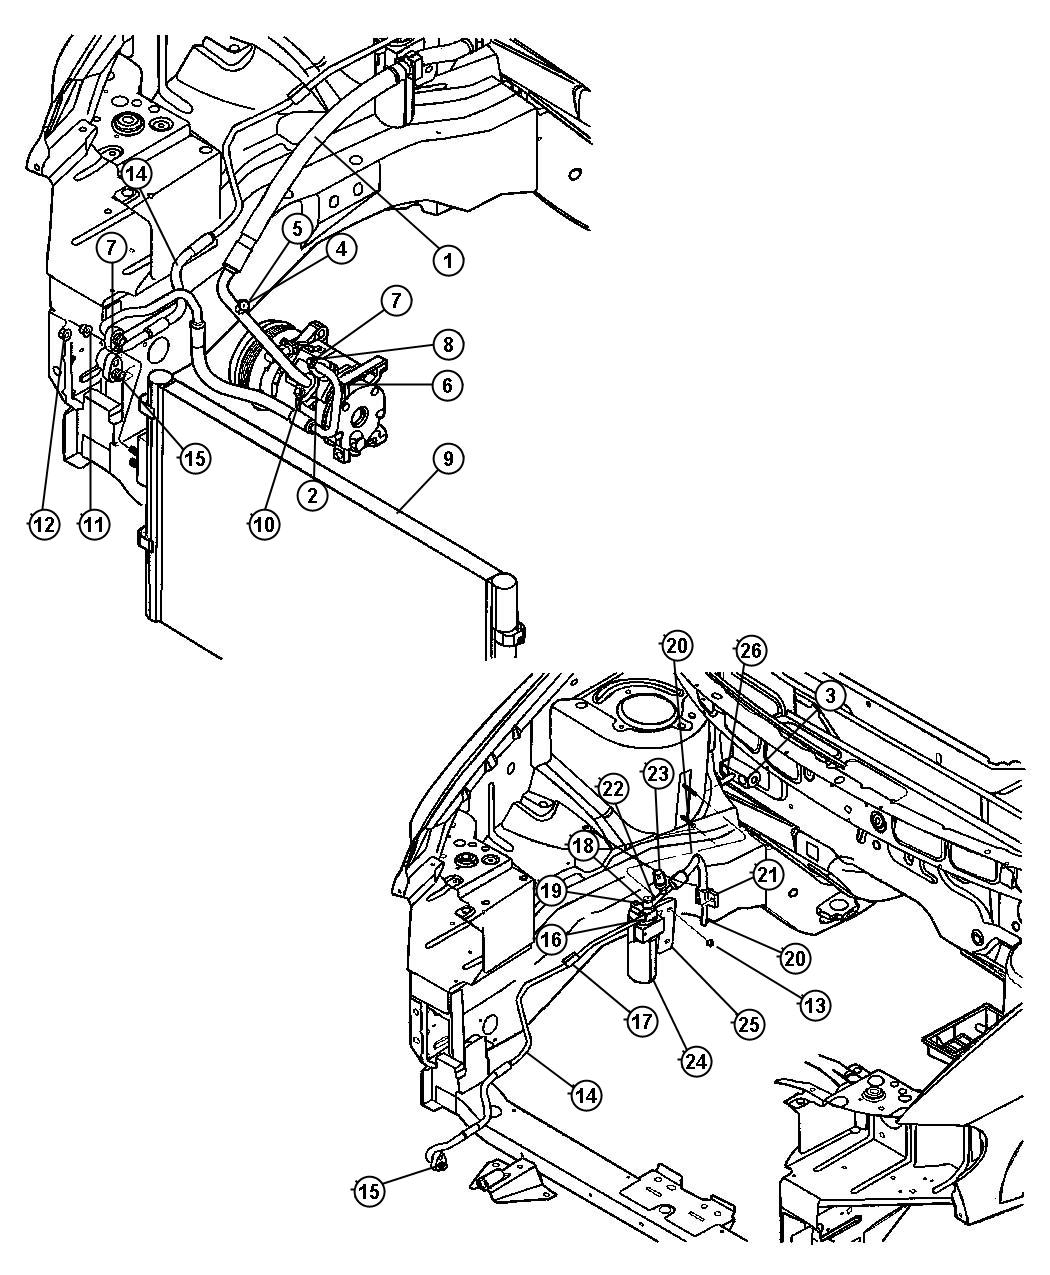 83 vortec v8 truck likewise 2008 chrysler town and country ke parts diagram html in addition